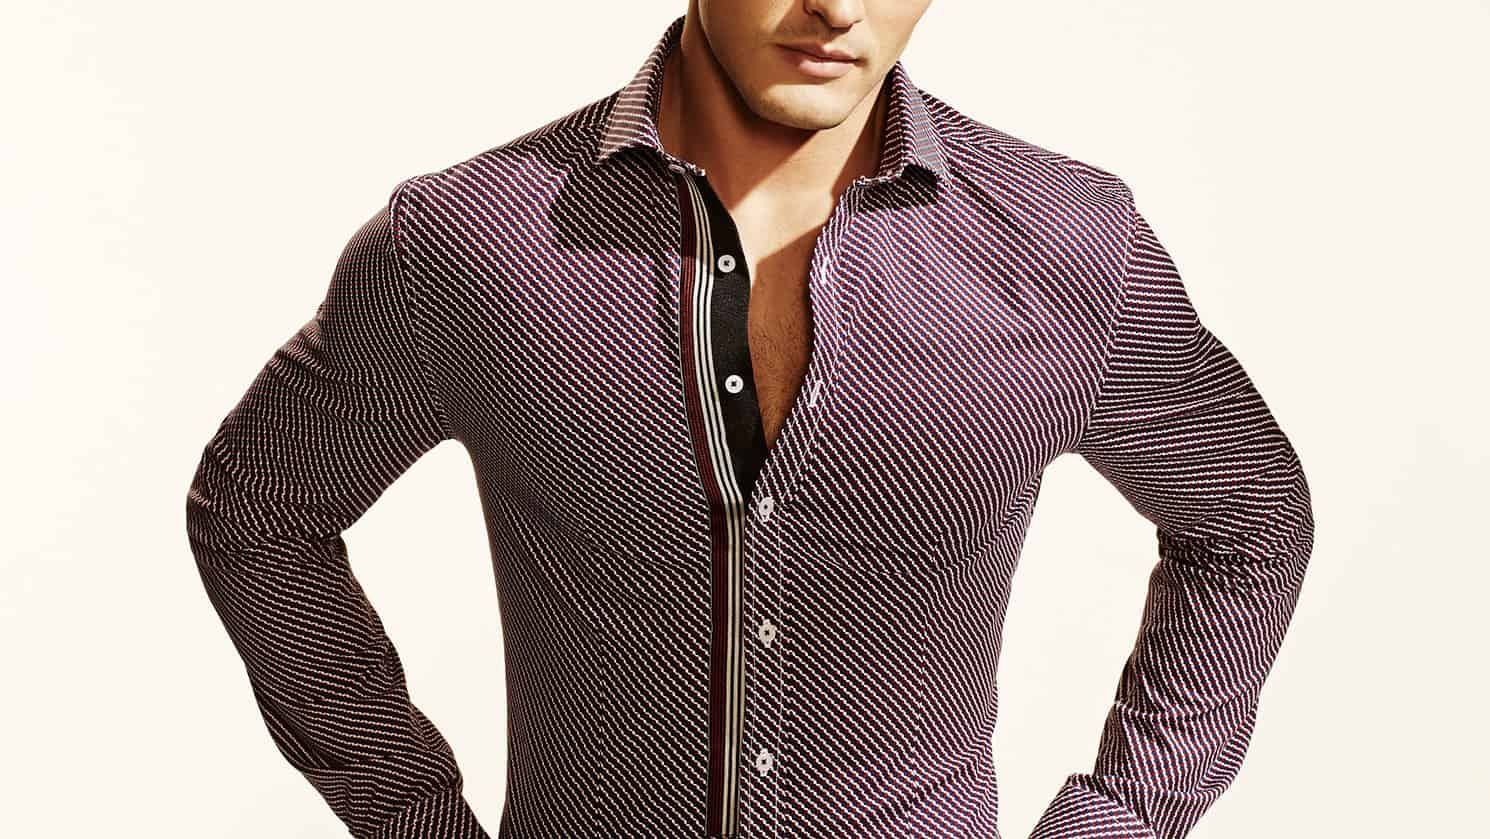 Don't Show Too Much – men dress for body type